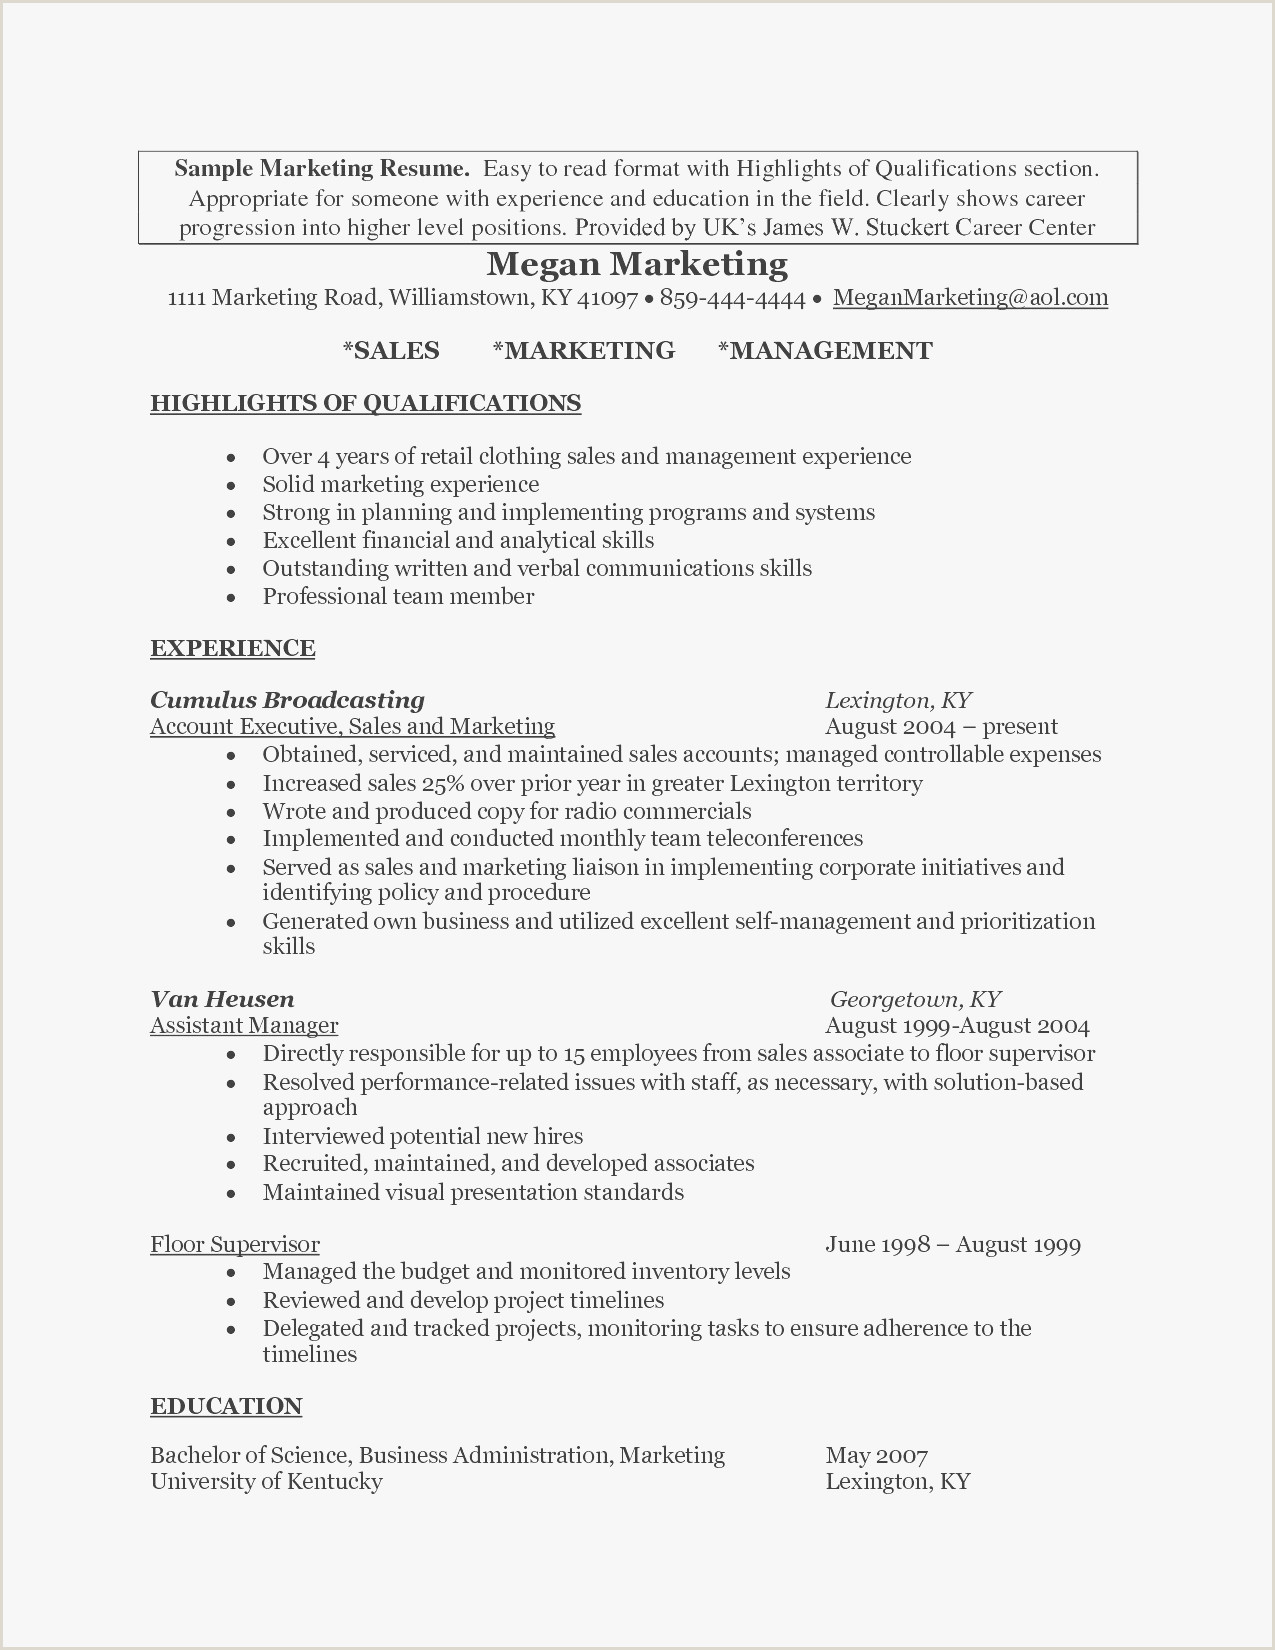 Resume Samples For Sales And Marketing Manager New Hr